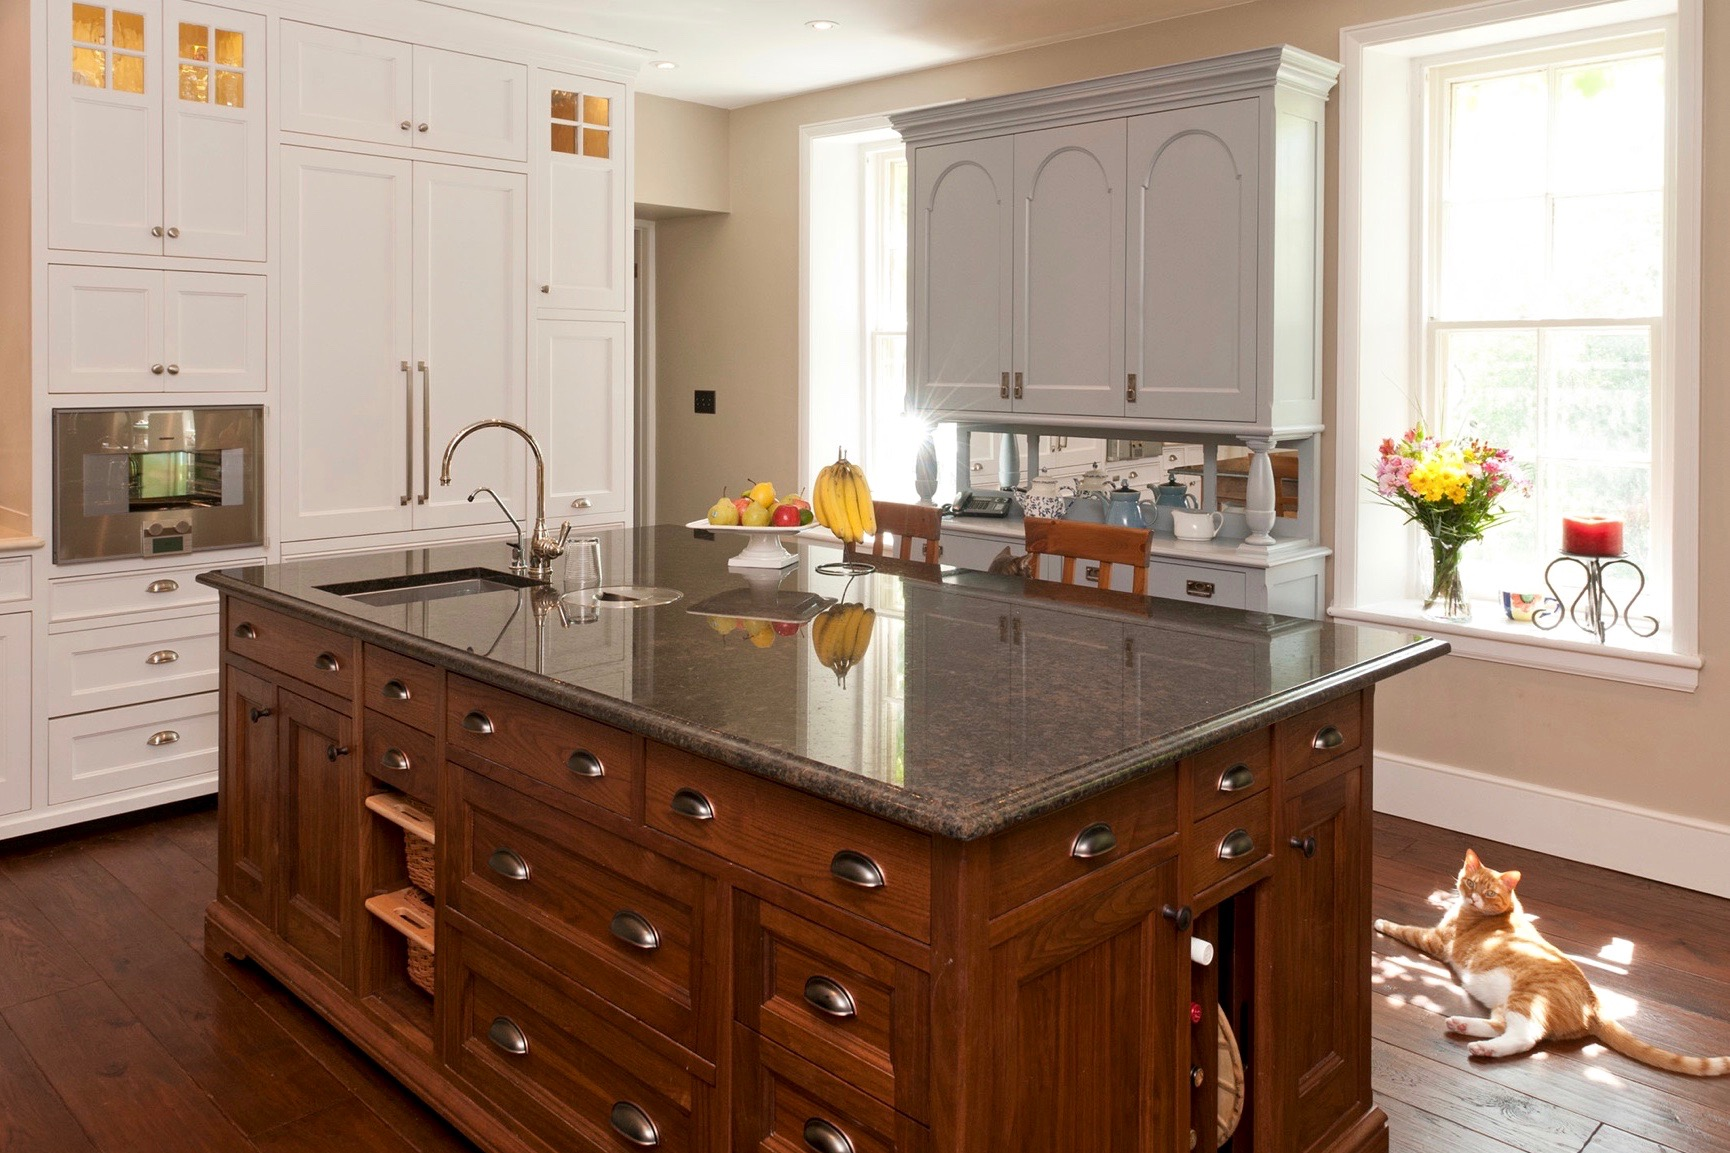 kitchen island2.jpg